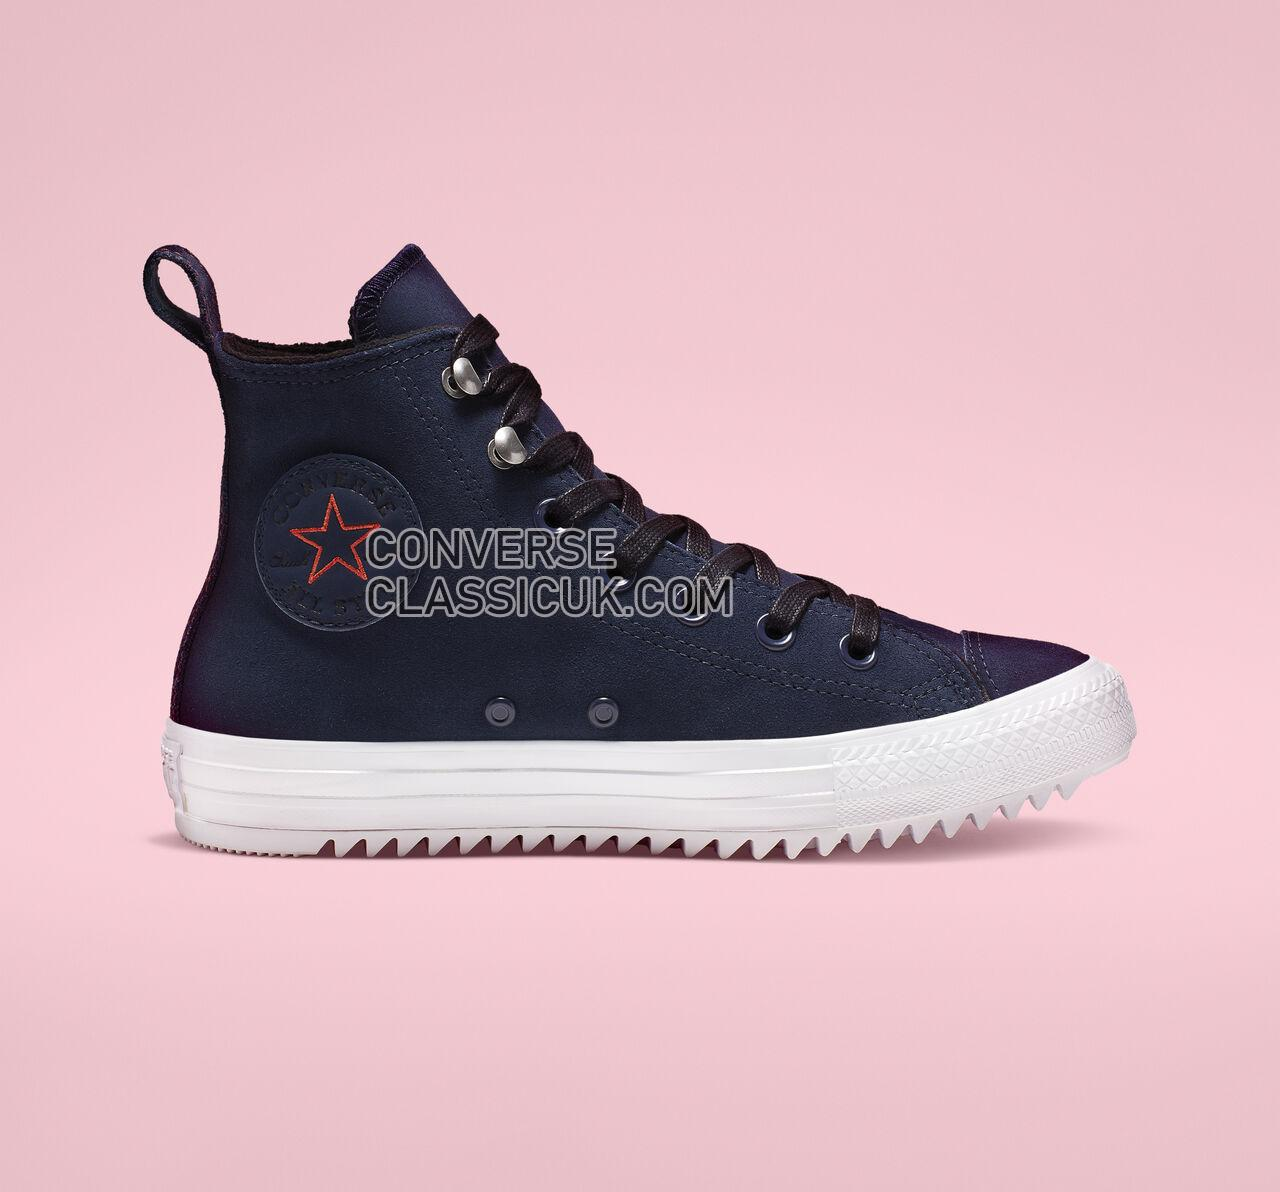 Converse Chuck Taylor All Star Hiker High Top Womens 565237C Obsidian/White/Black Shoes